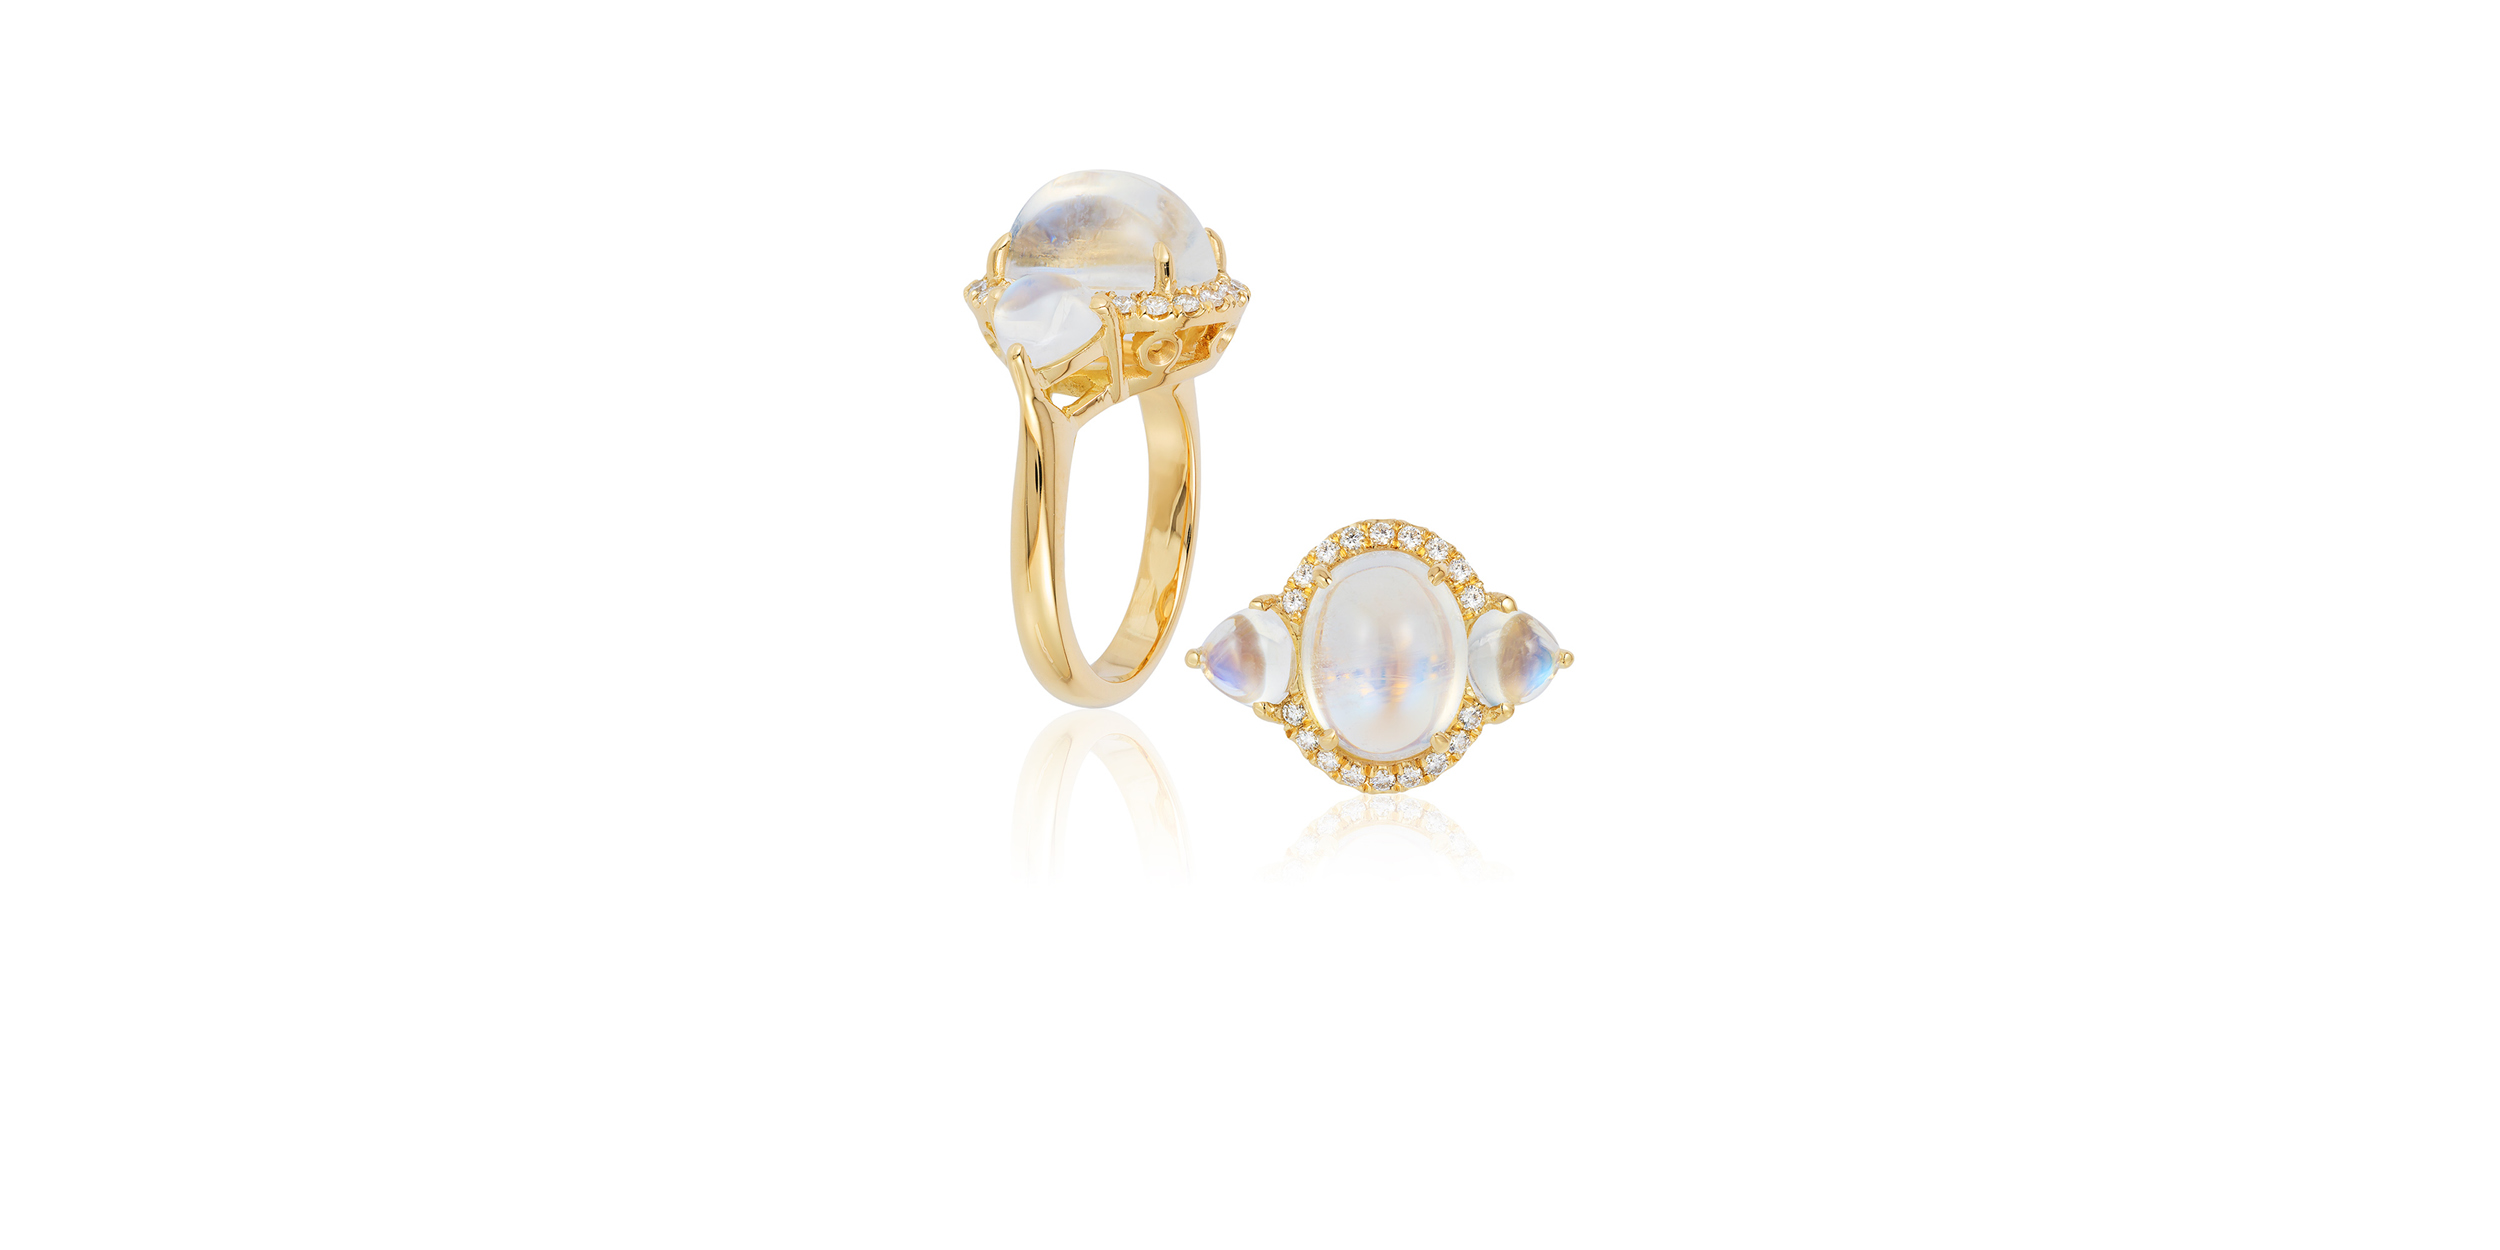 BLUE MOONSTONE RING